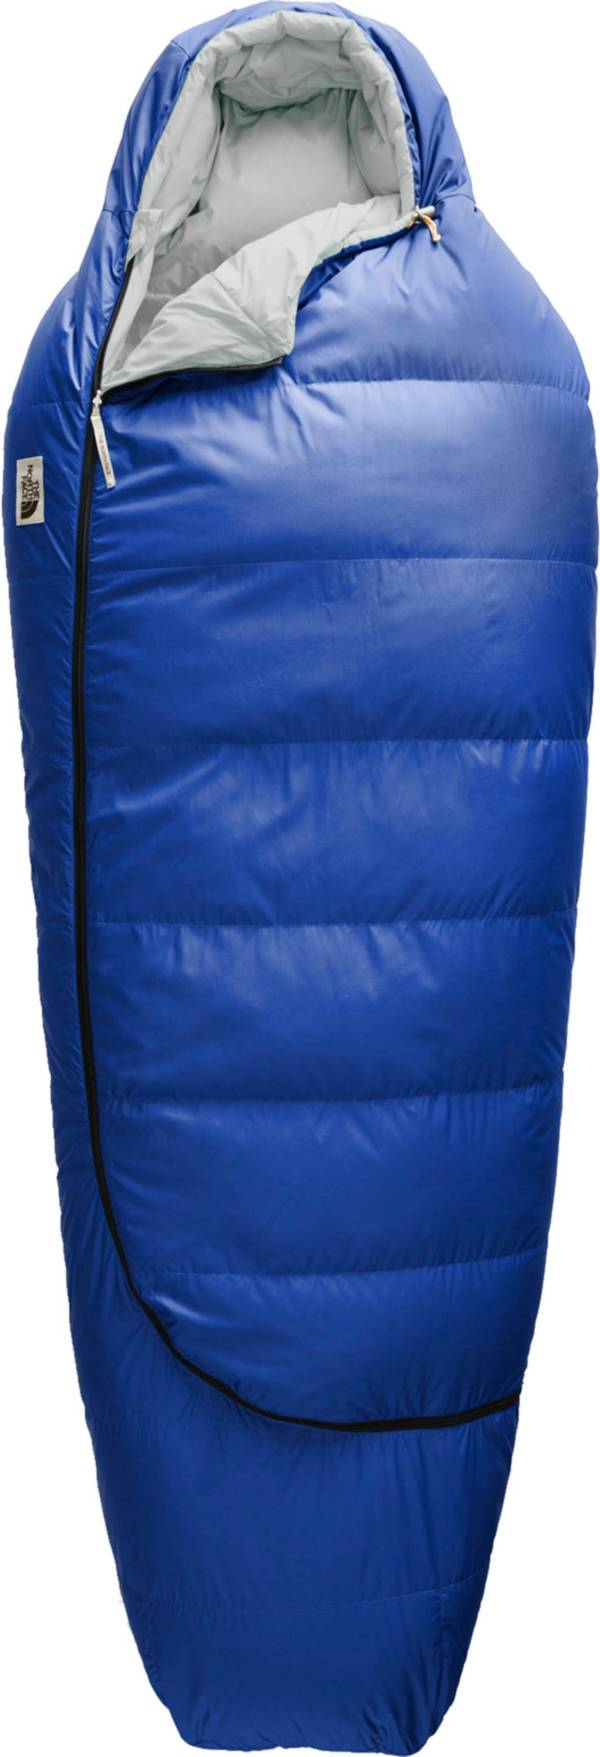 The North Face Eco Trail Down - 20 Sleeping Bag product image